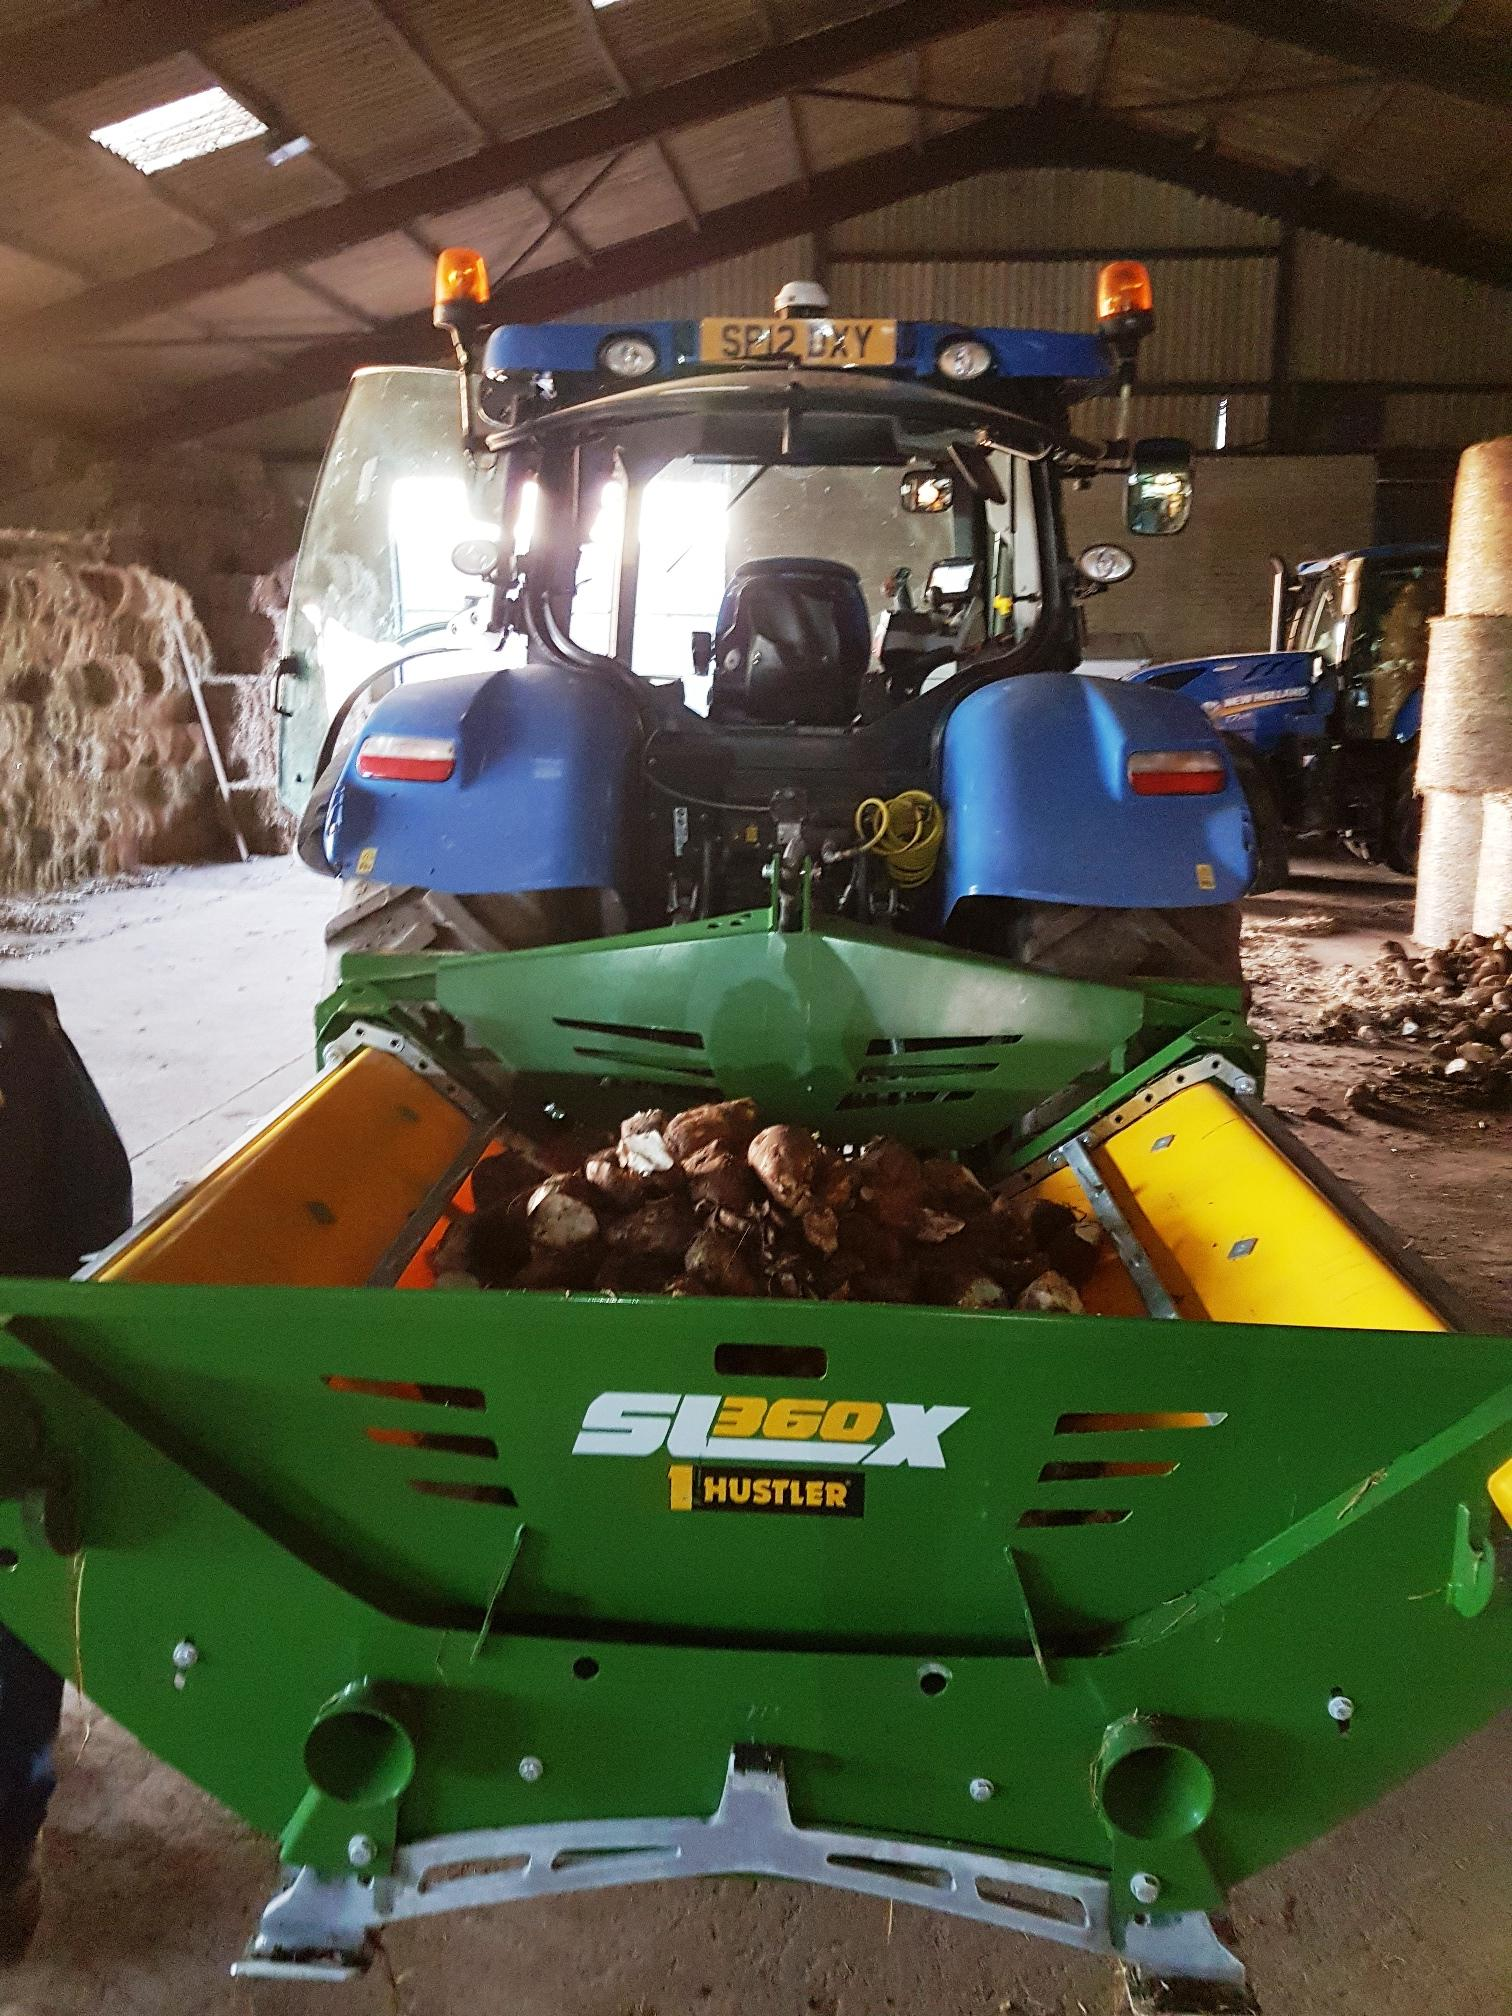 Feeding fodder beet indoors with the Hustler SL360X (2)